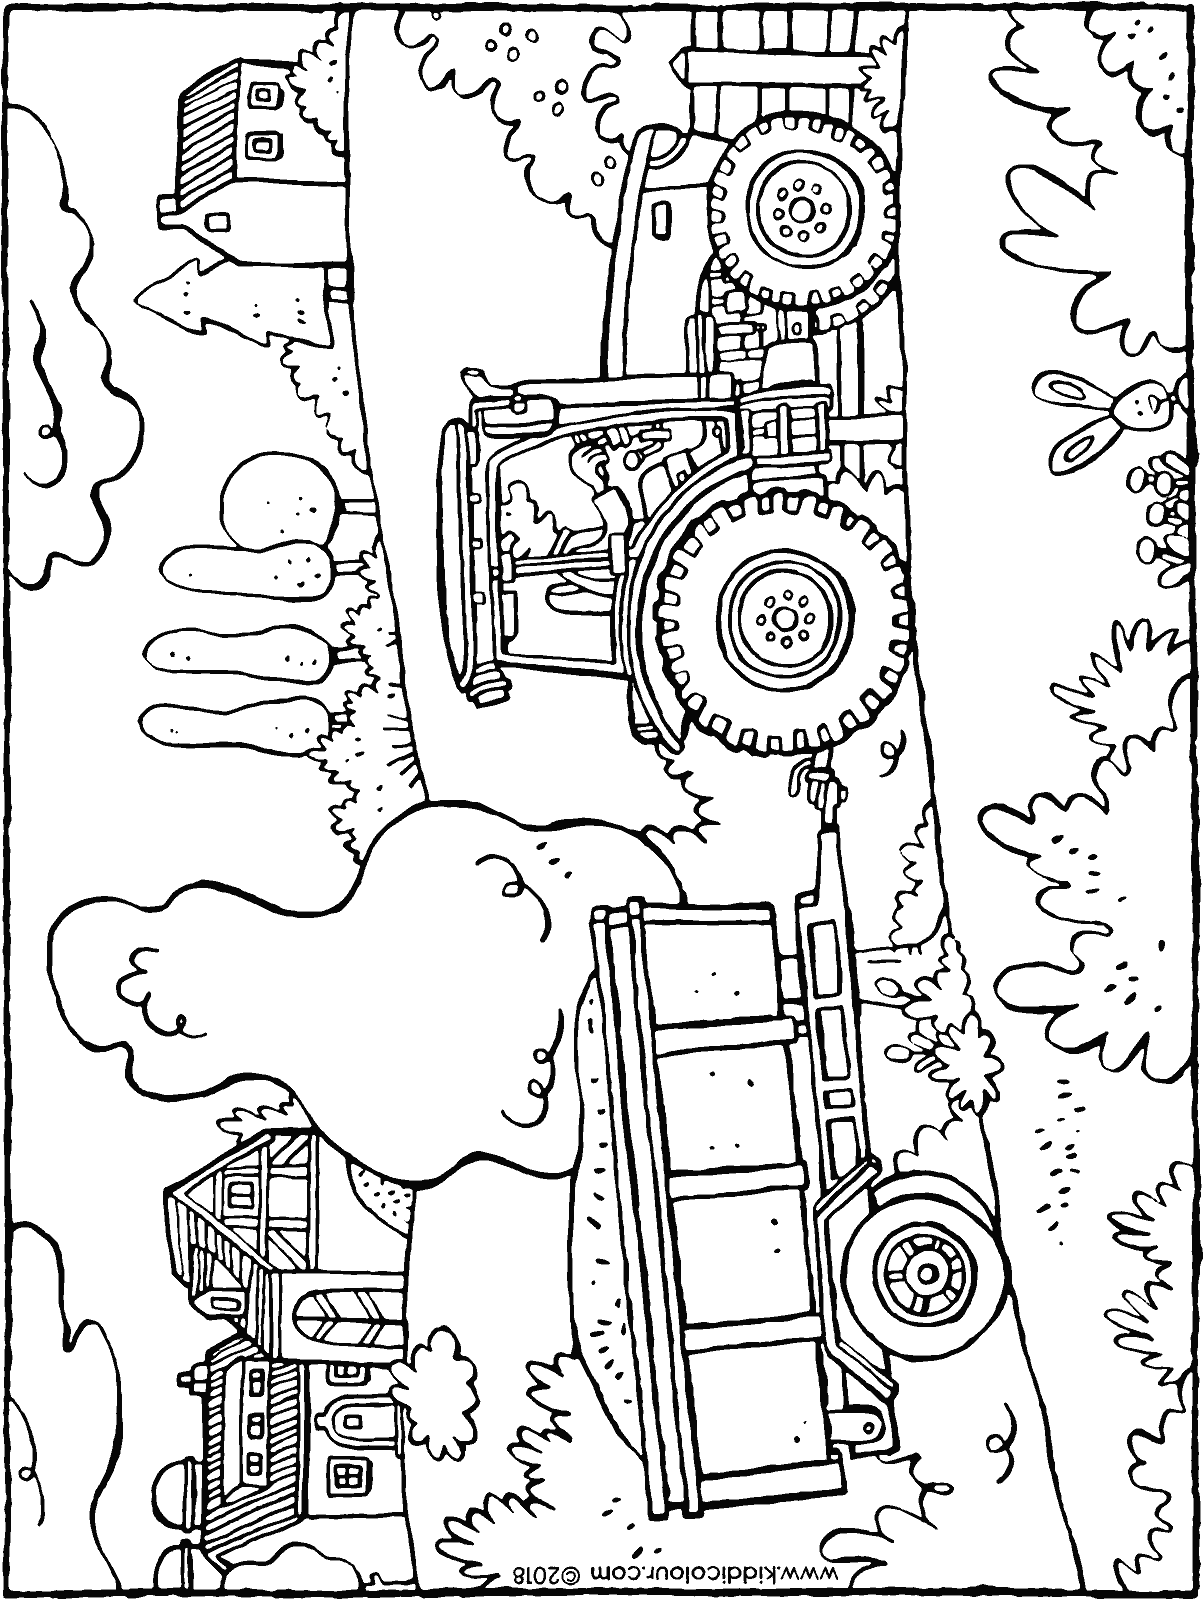 tractor and trailer colouring page drawing picture 01H